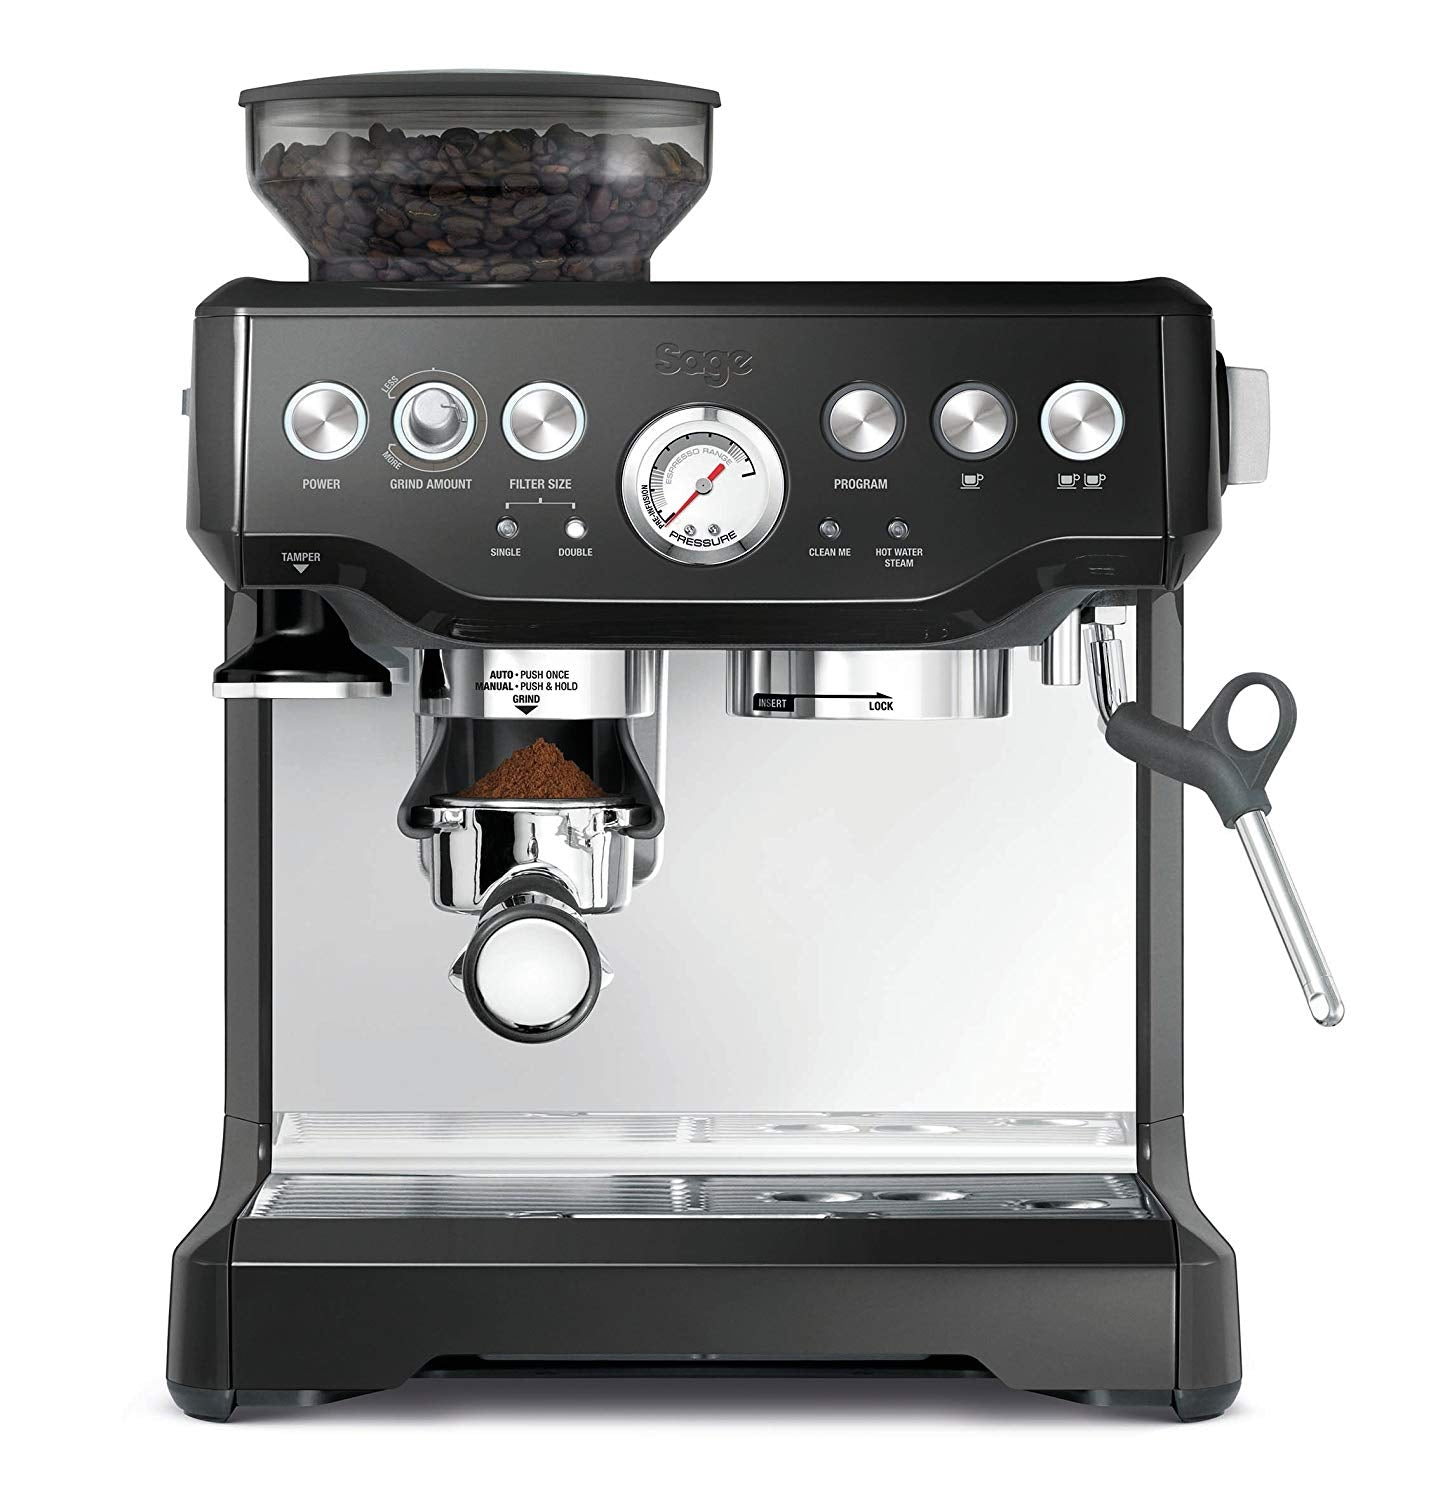 All-In-One  Pro Quality Espresso Coffee Maker Semi Automatic - Grinds Beans, Froths Milk